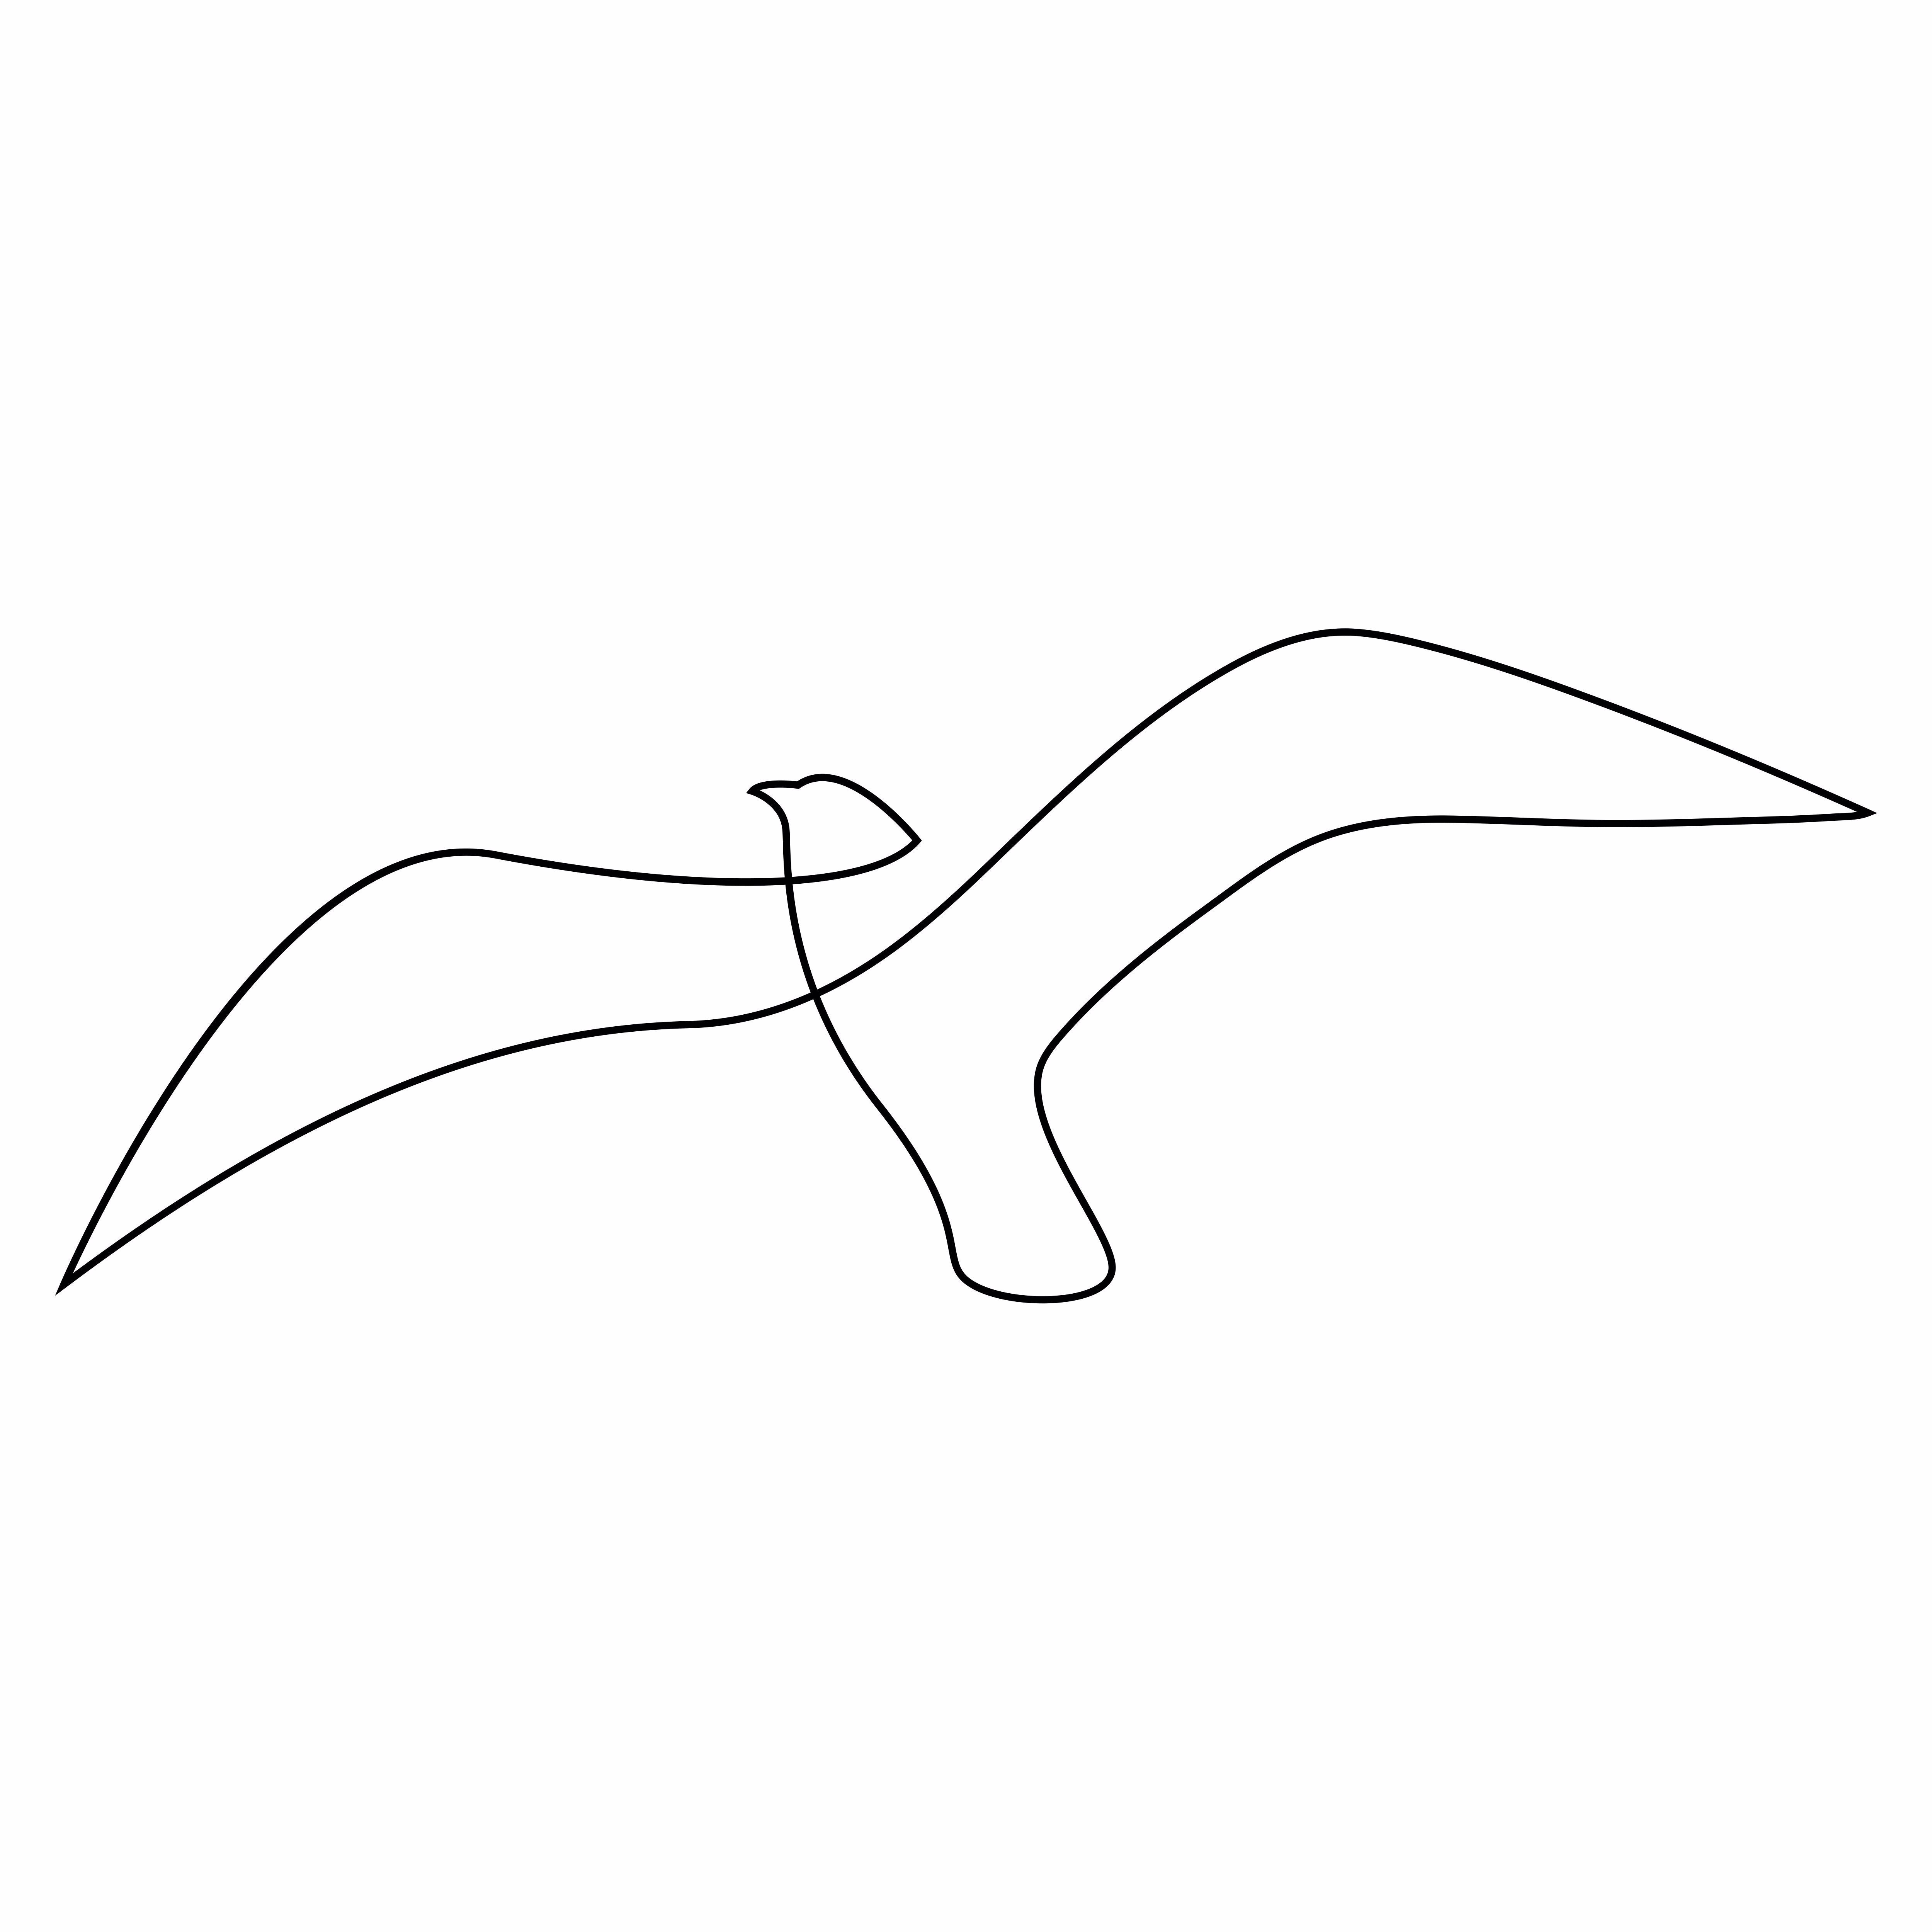 Single Line Drawing Of Seagull Great As Tattoo Sketch Line Drawing Tattoos Single Line Drawing Bird Line Drawing